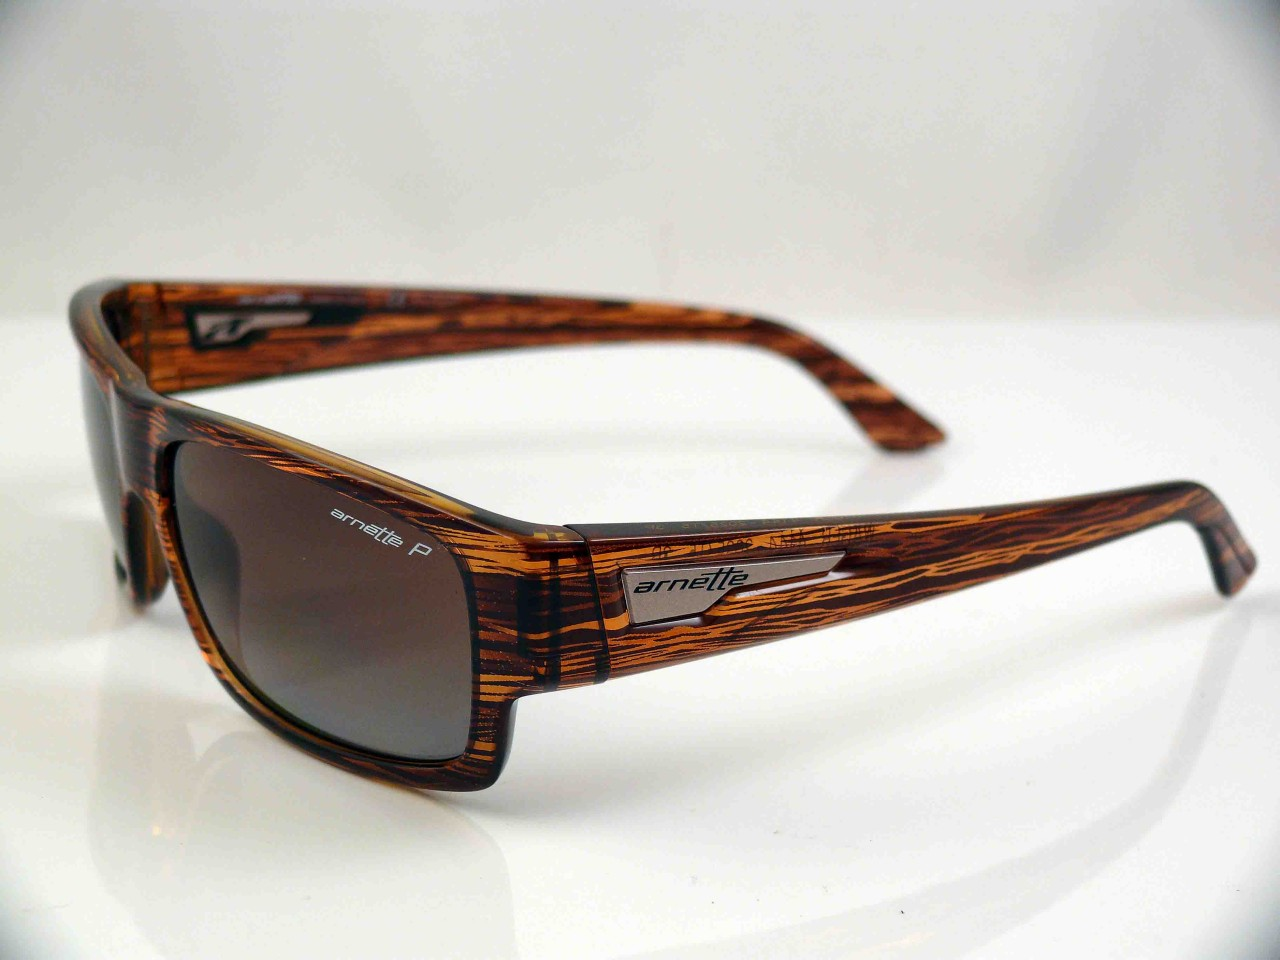 8c7f8d2194 ARNETTE POLARIZED WAGER SUNGLASSES HAVANA BROWN GRD NEW on PopScreen